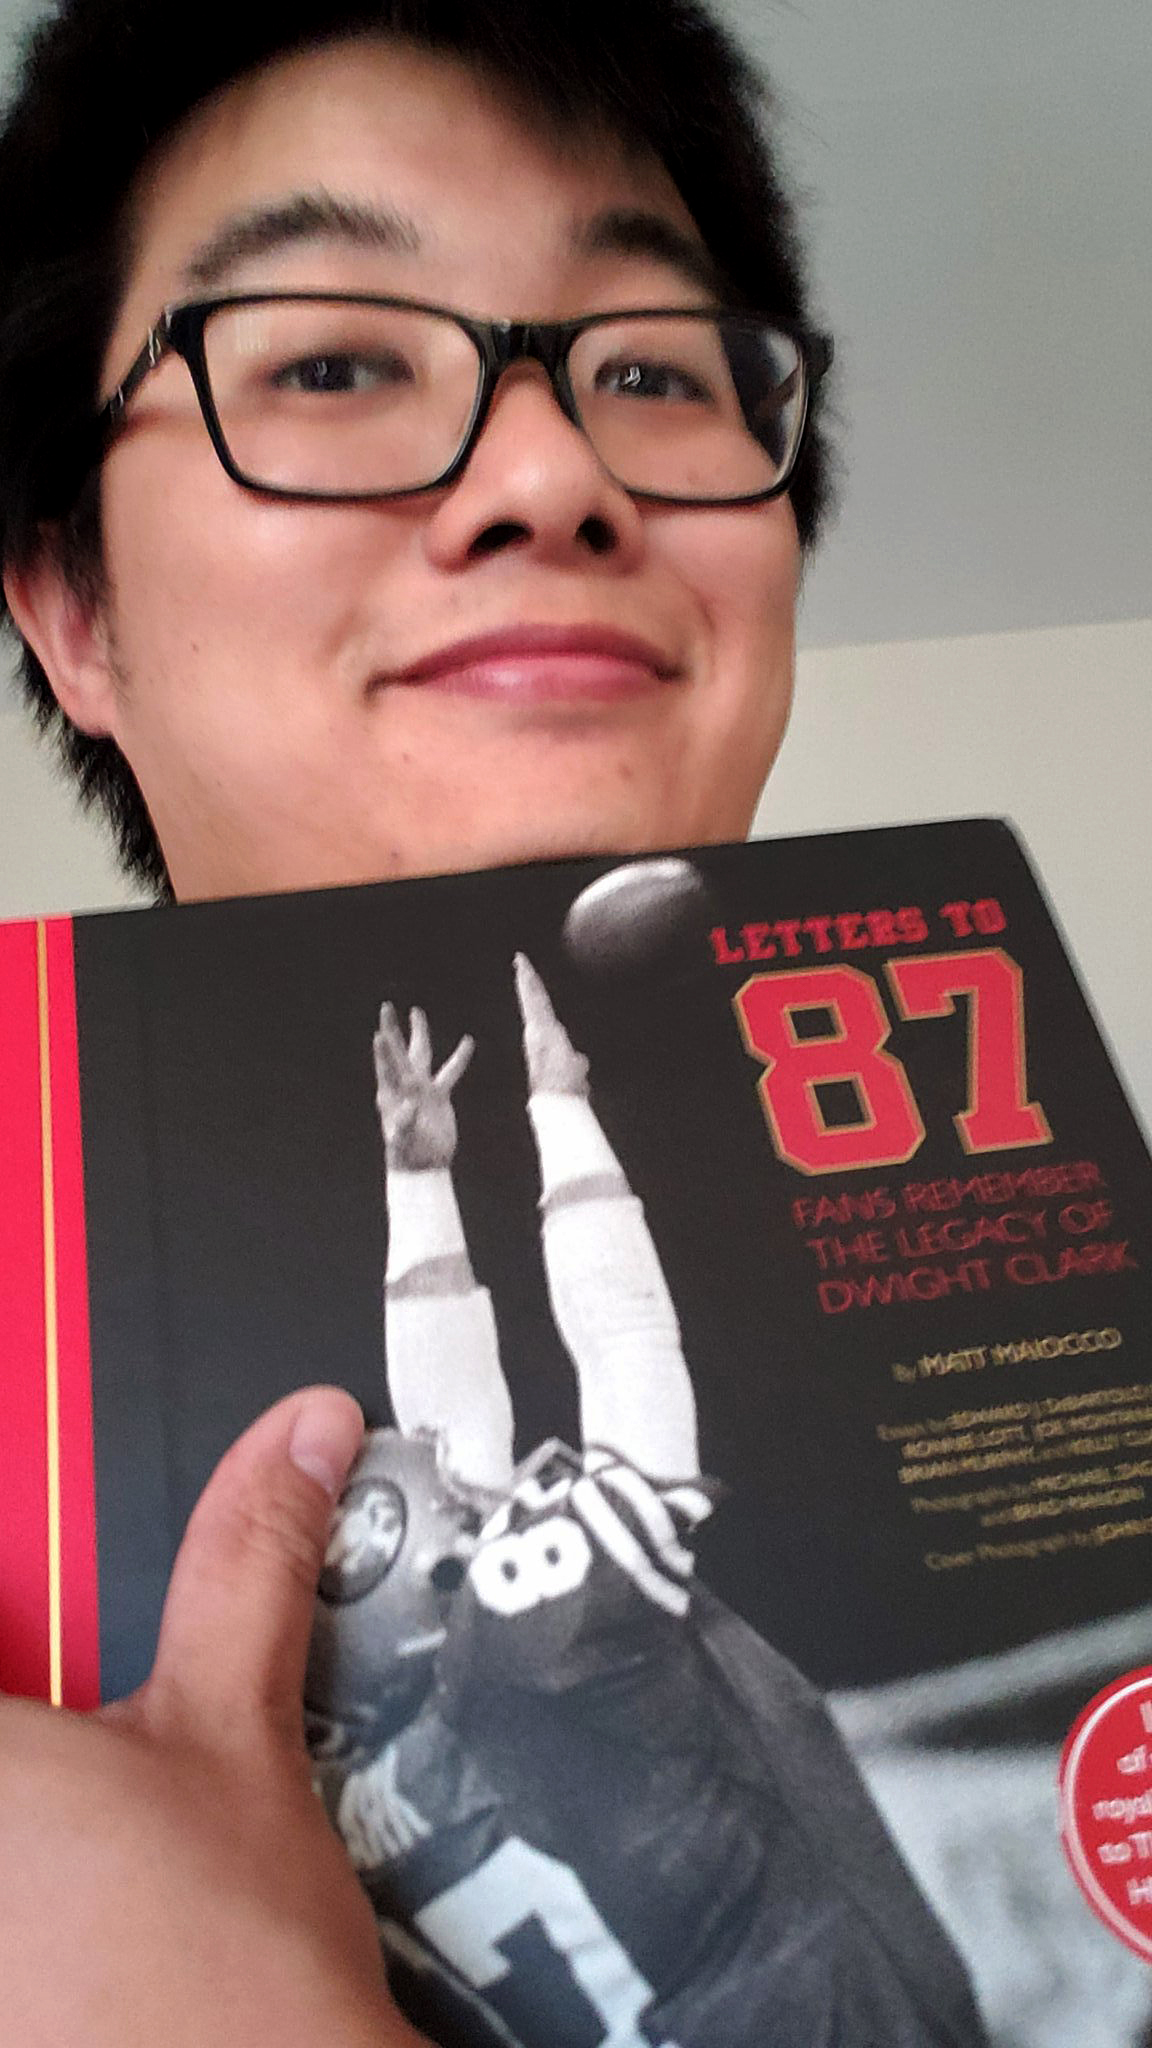 @SamuelYLam - My copy of #LettersTo87 arrived today. What a beautiful book!